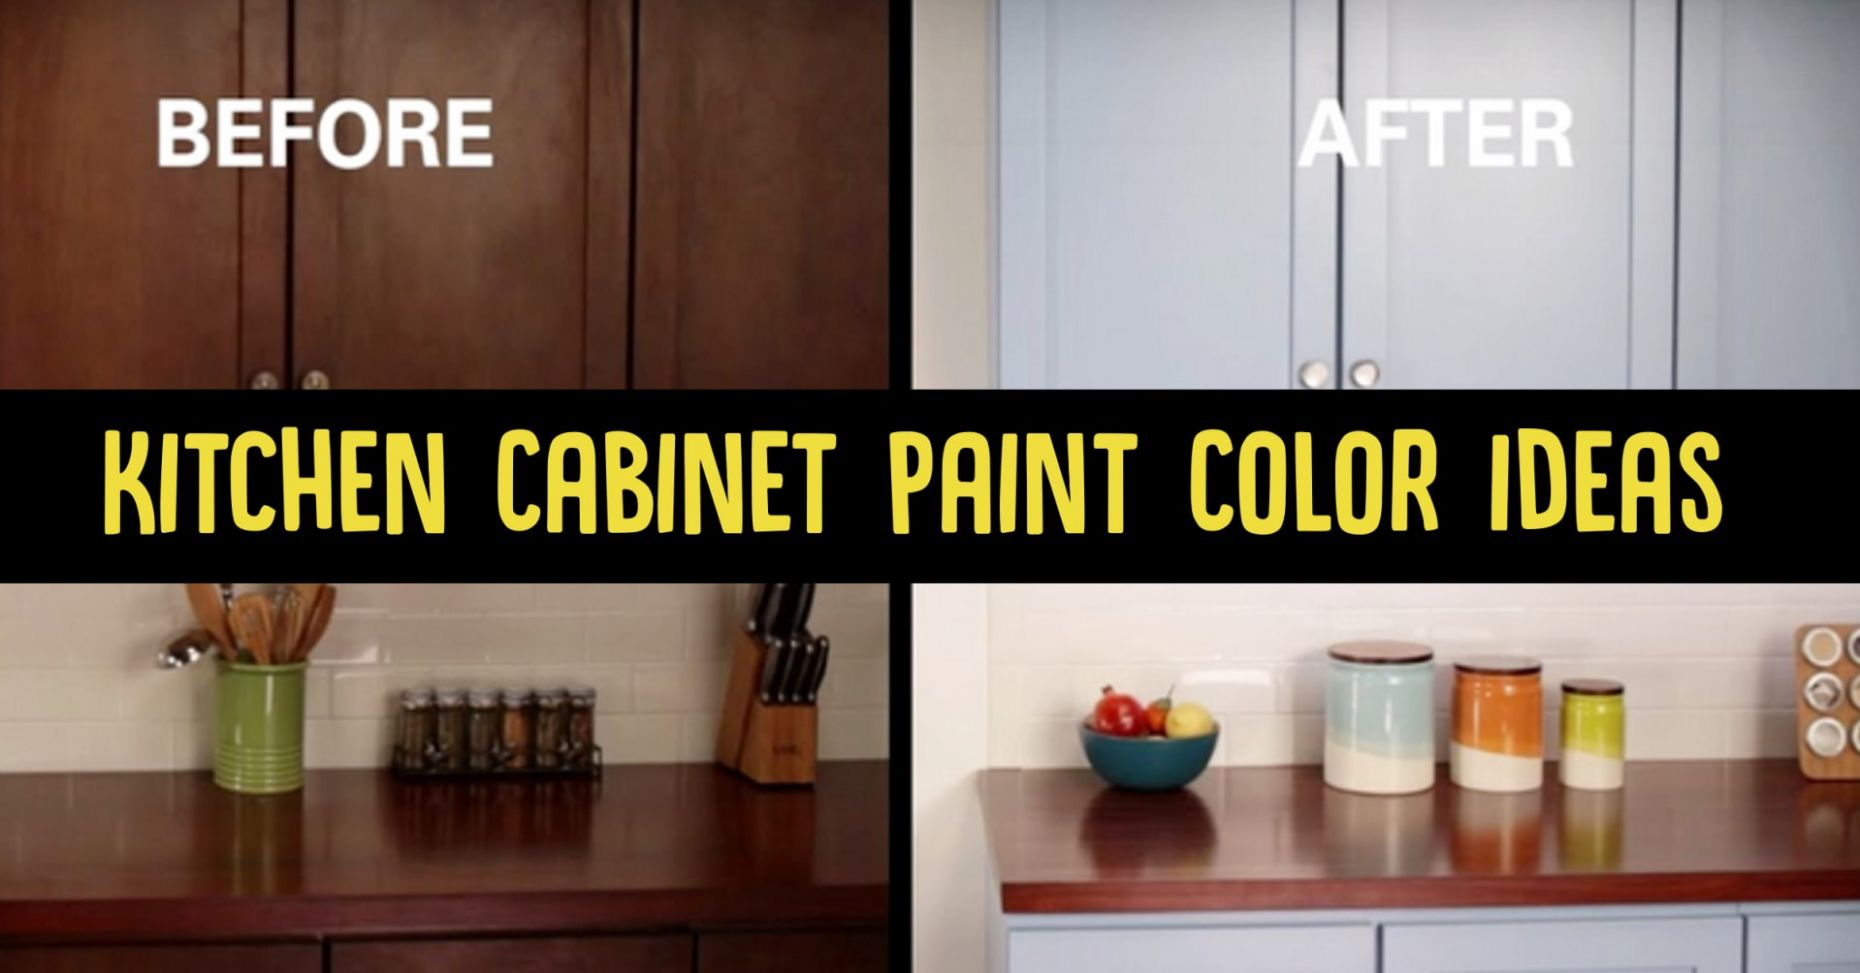 Painting Kitchen Cabinets: Refresh Your Outdated Kitchen With ...